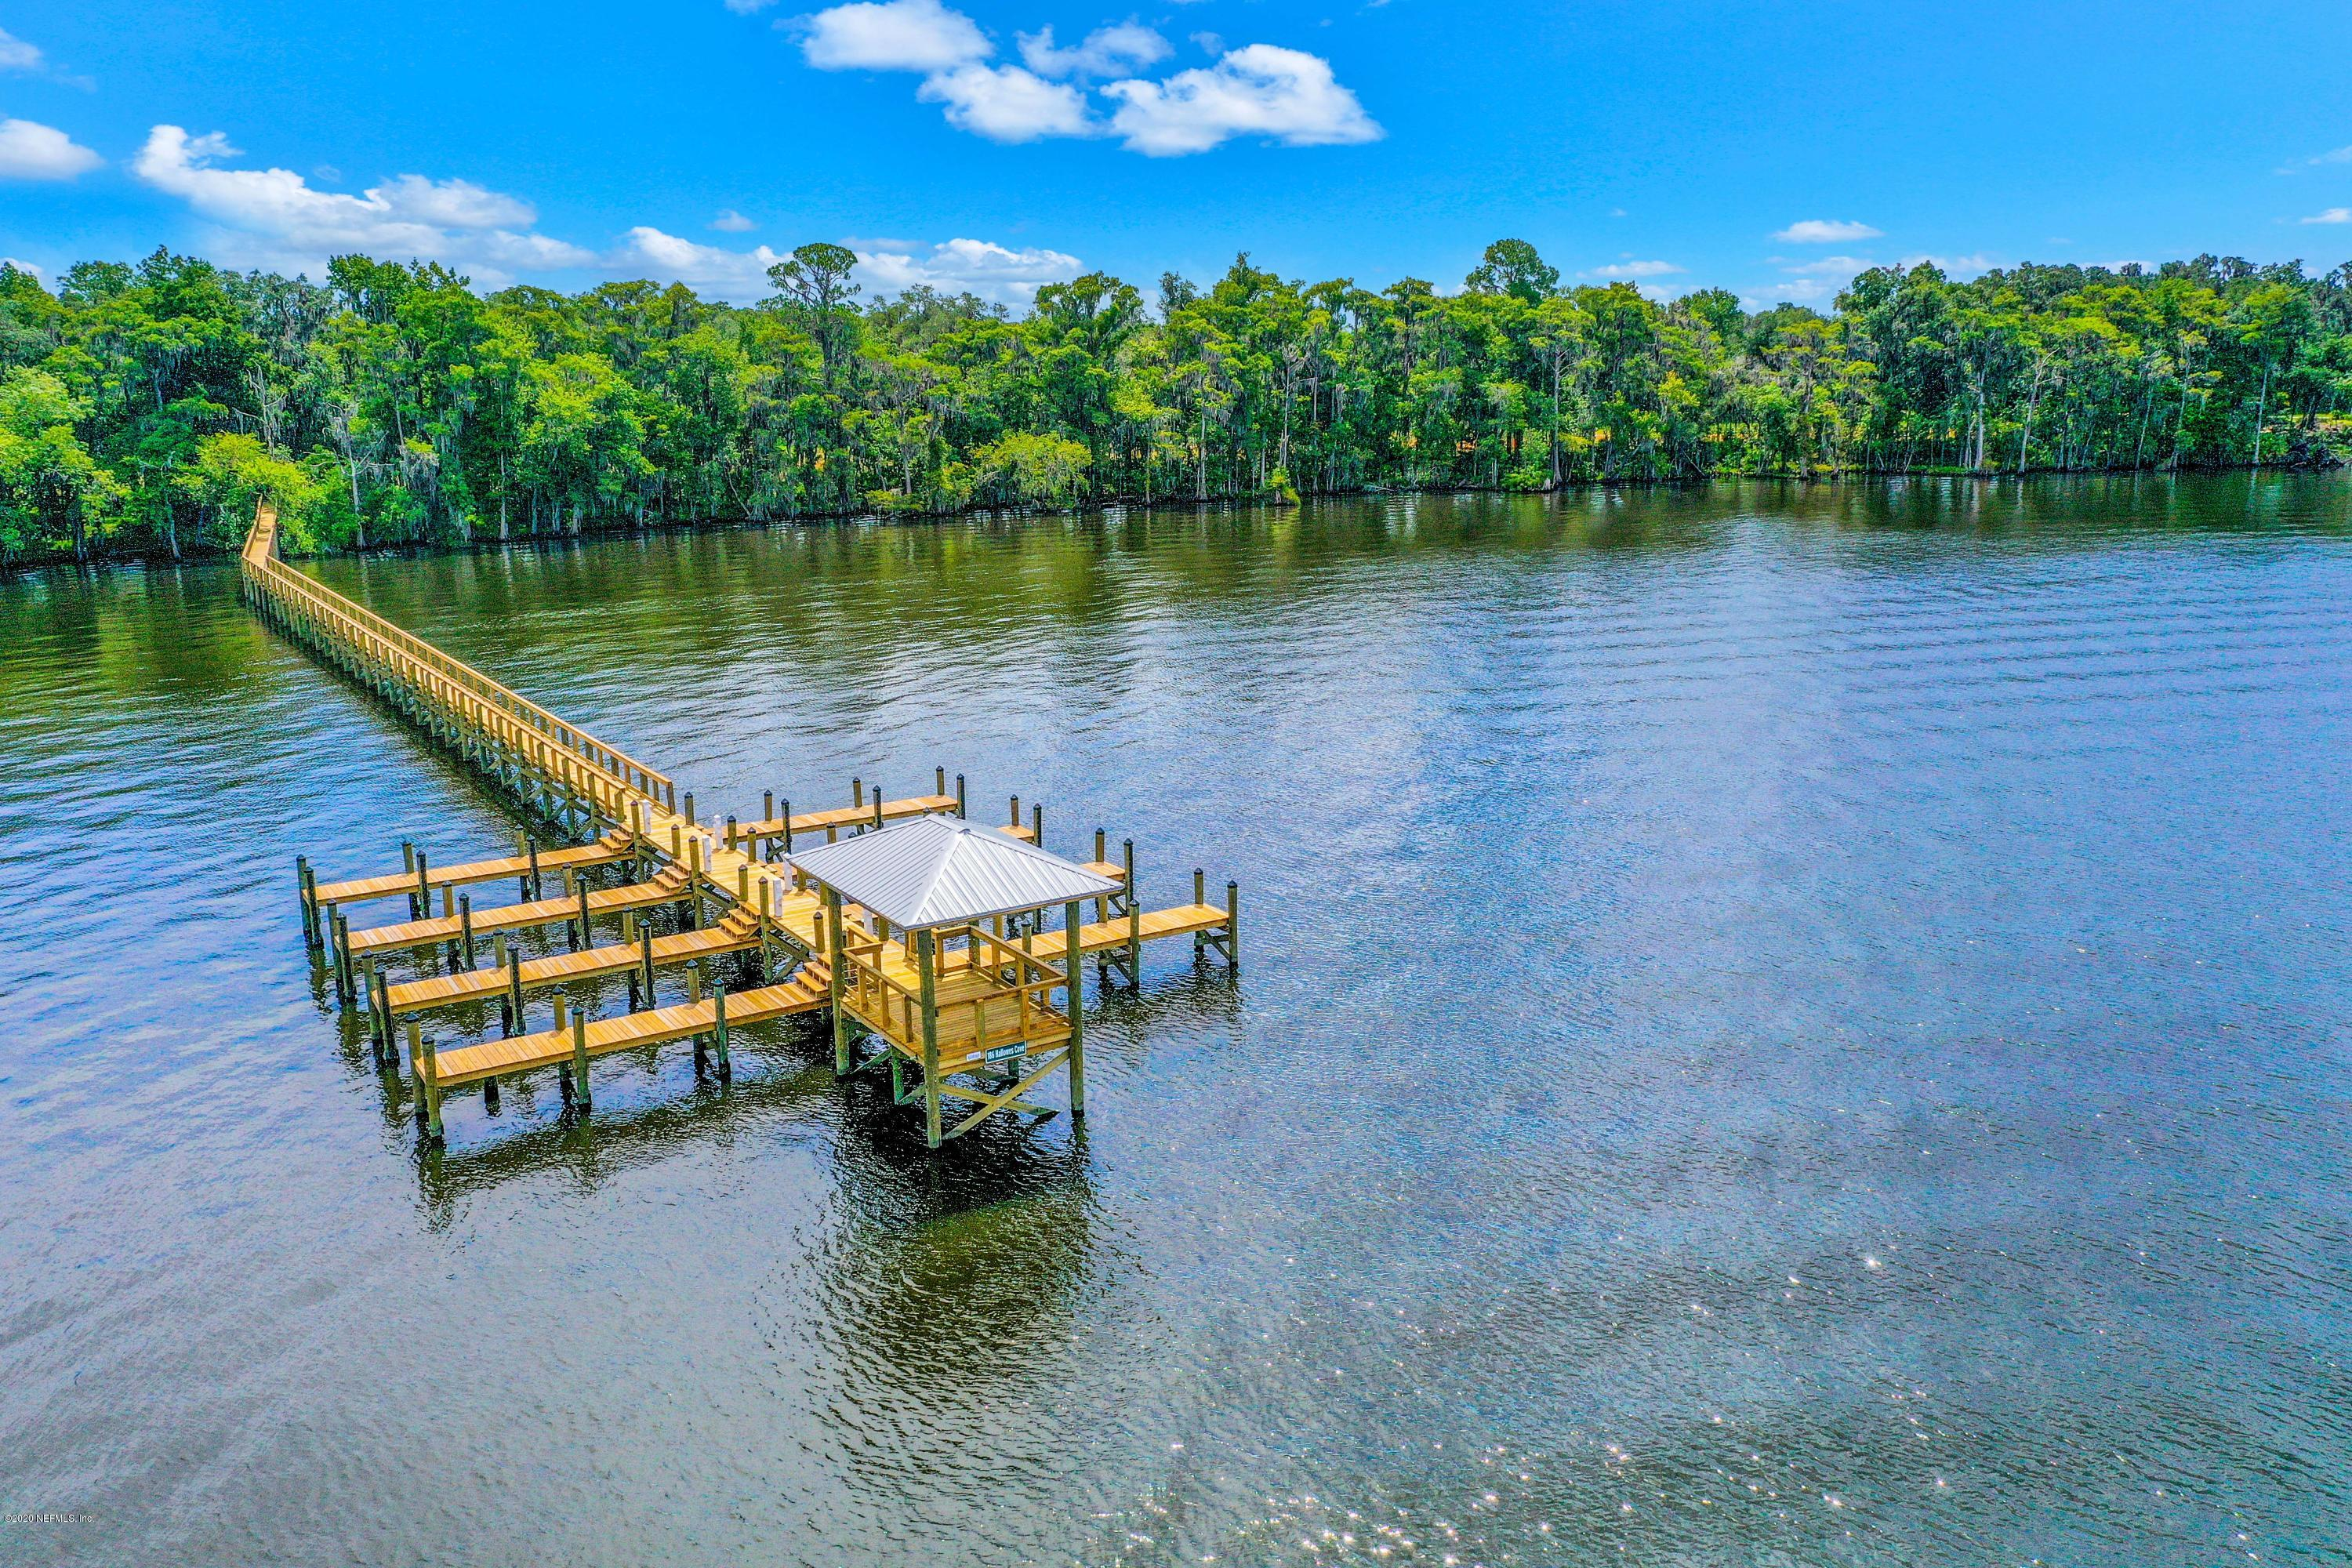 396 POPO, ST JOHNS, FLORIDA 32259, ,Vacant land,For sale,POPO,905178